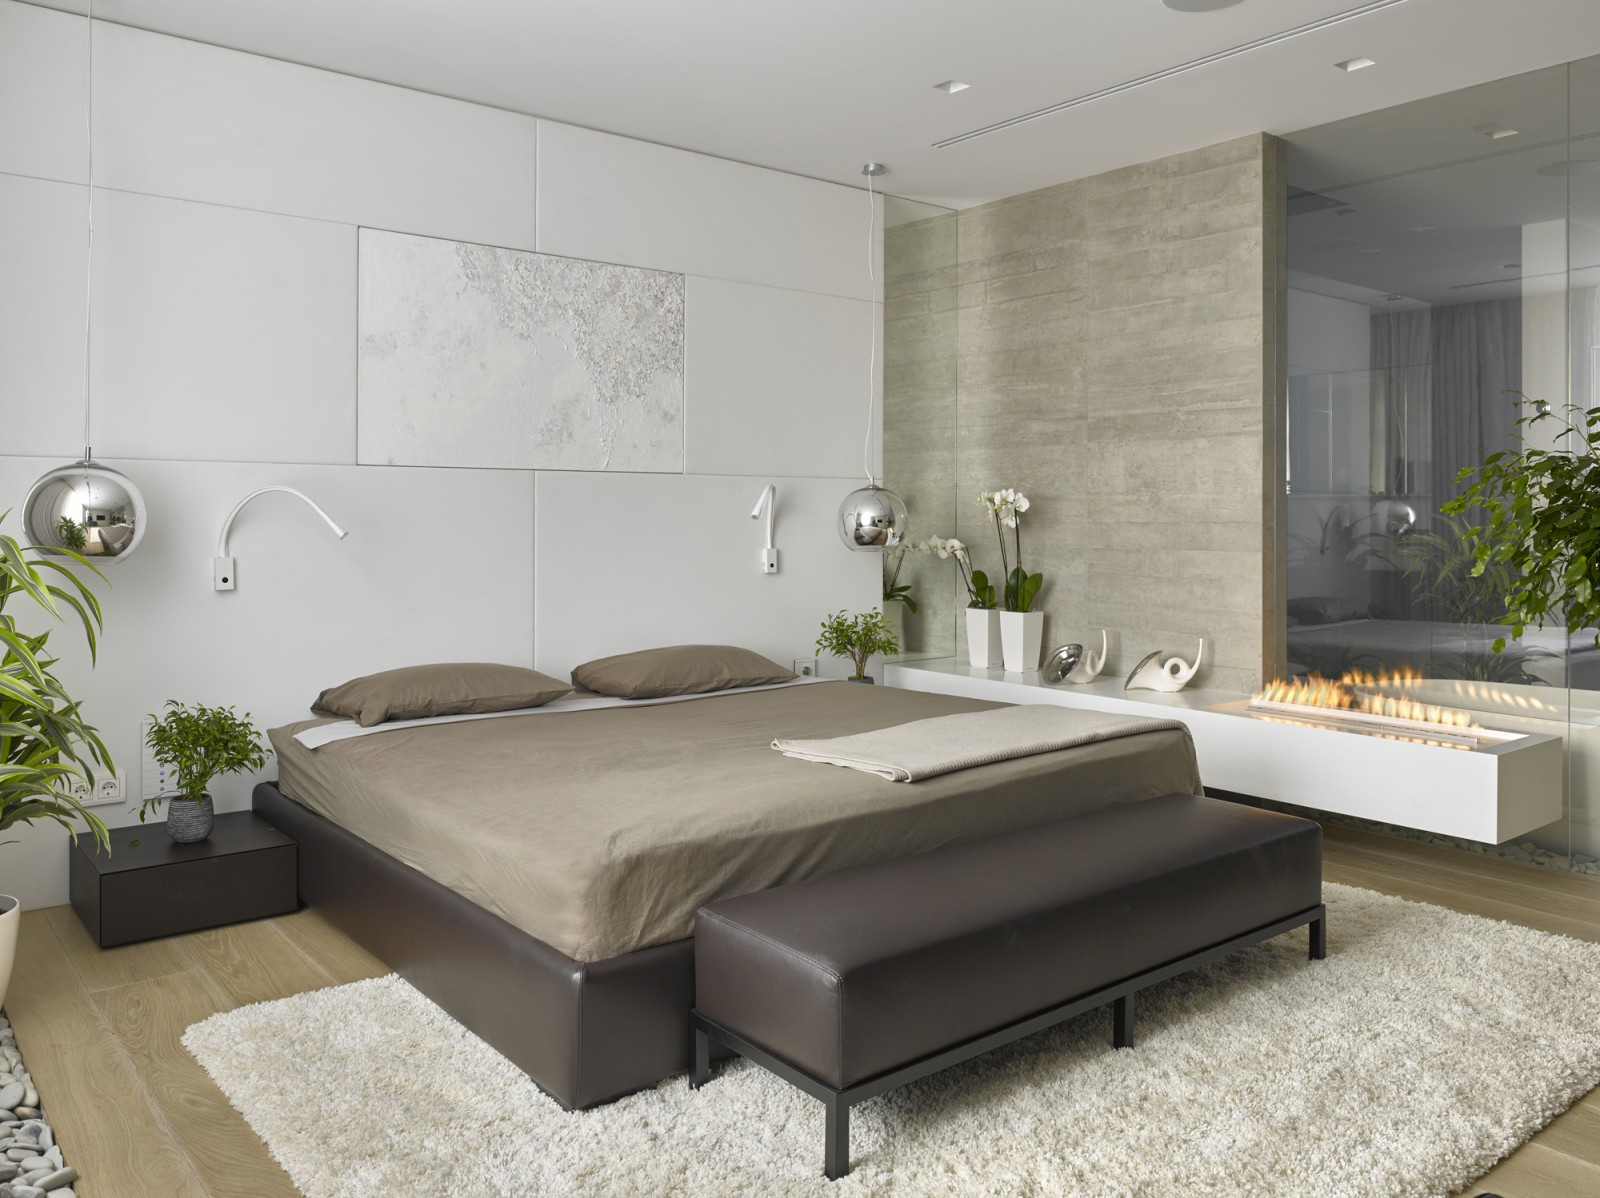 20 Best Small Modern Bedroom Ideas Architecture Beast intended for 14 Clever Concepts of How to Improve Modern Elegant Bedrooms